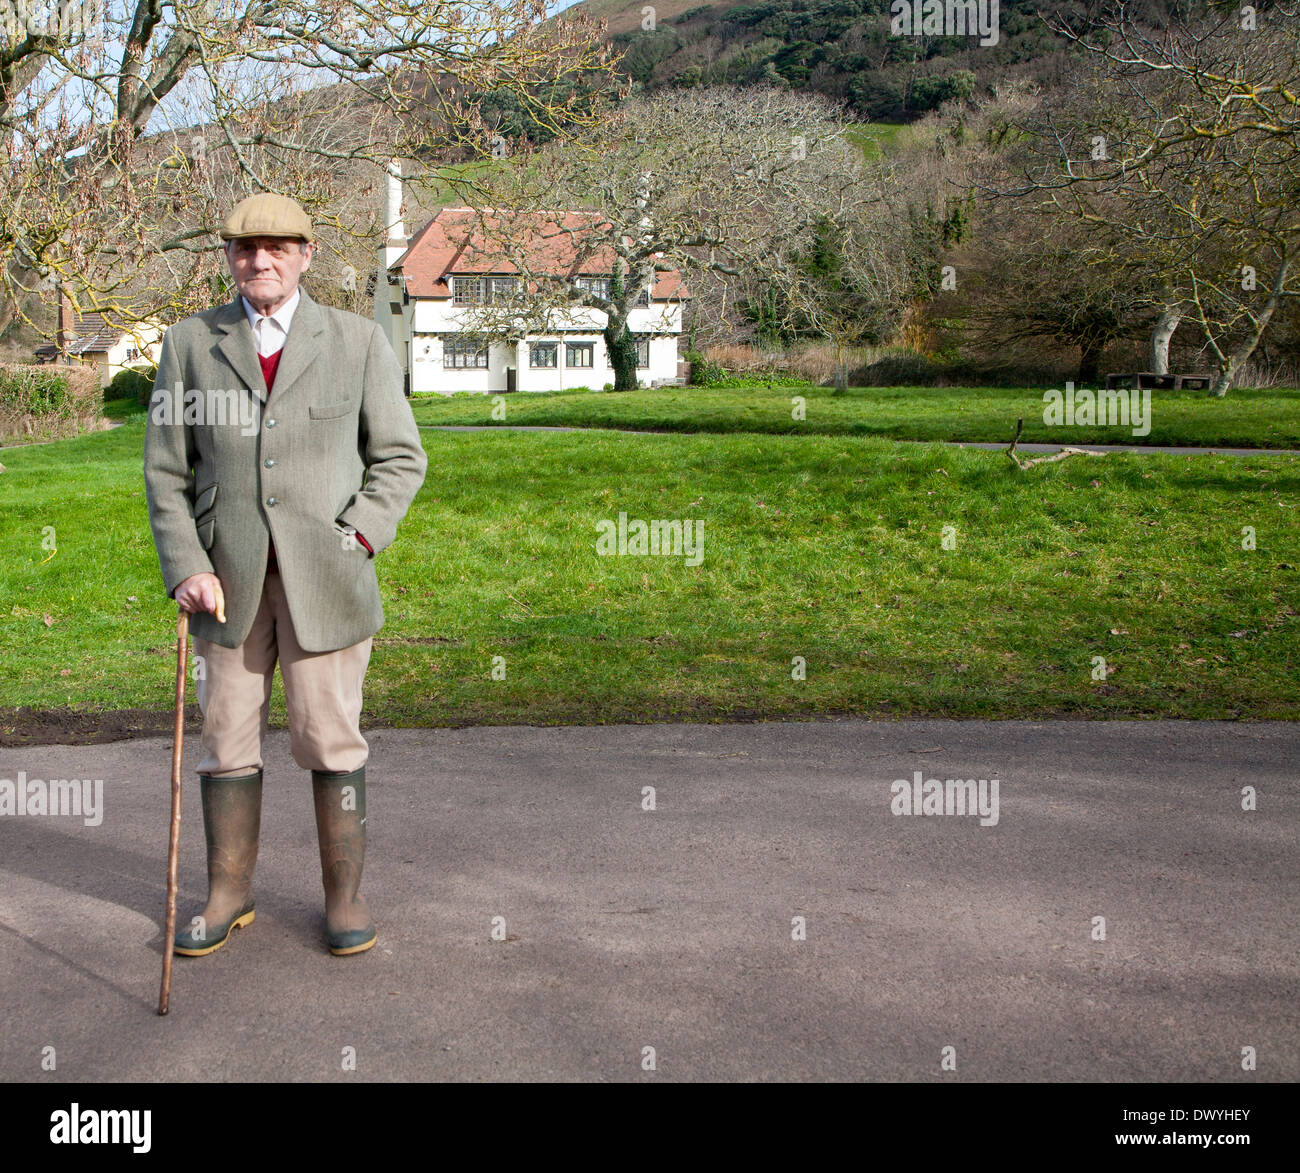 Smartly dressed gentleman out for his morning walk in Bossington, Exmoor national park, Somerset, England - Stock Image